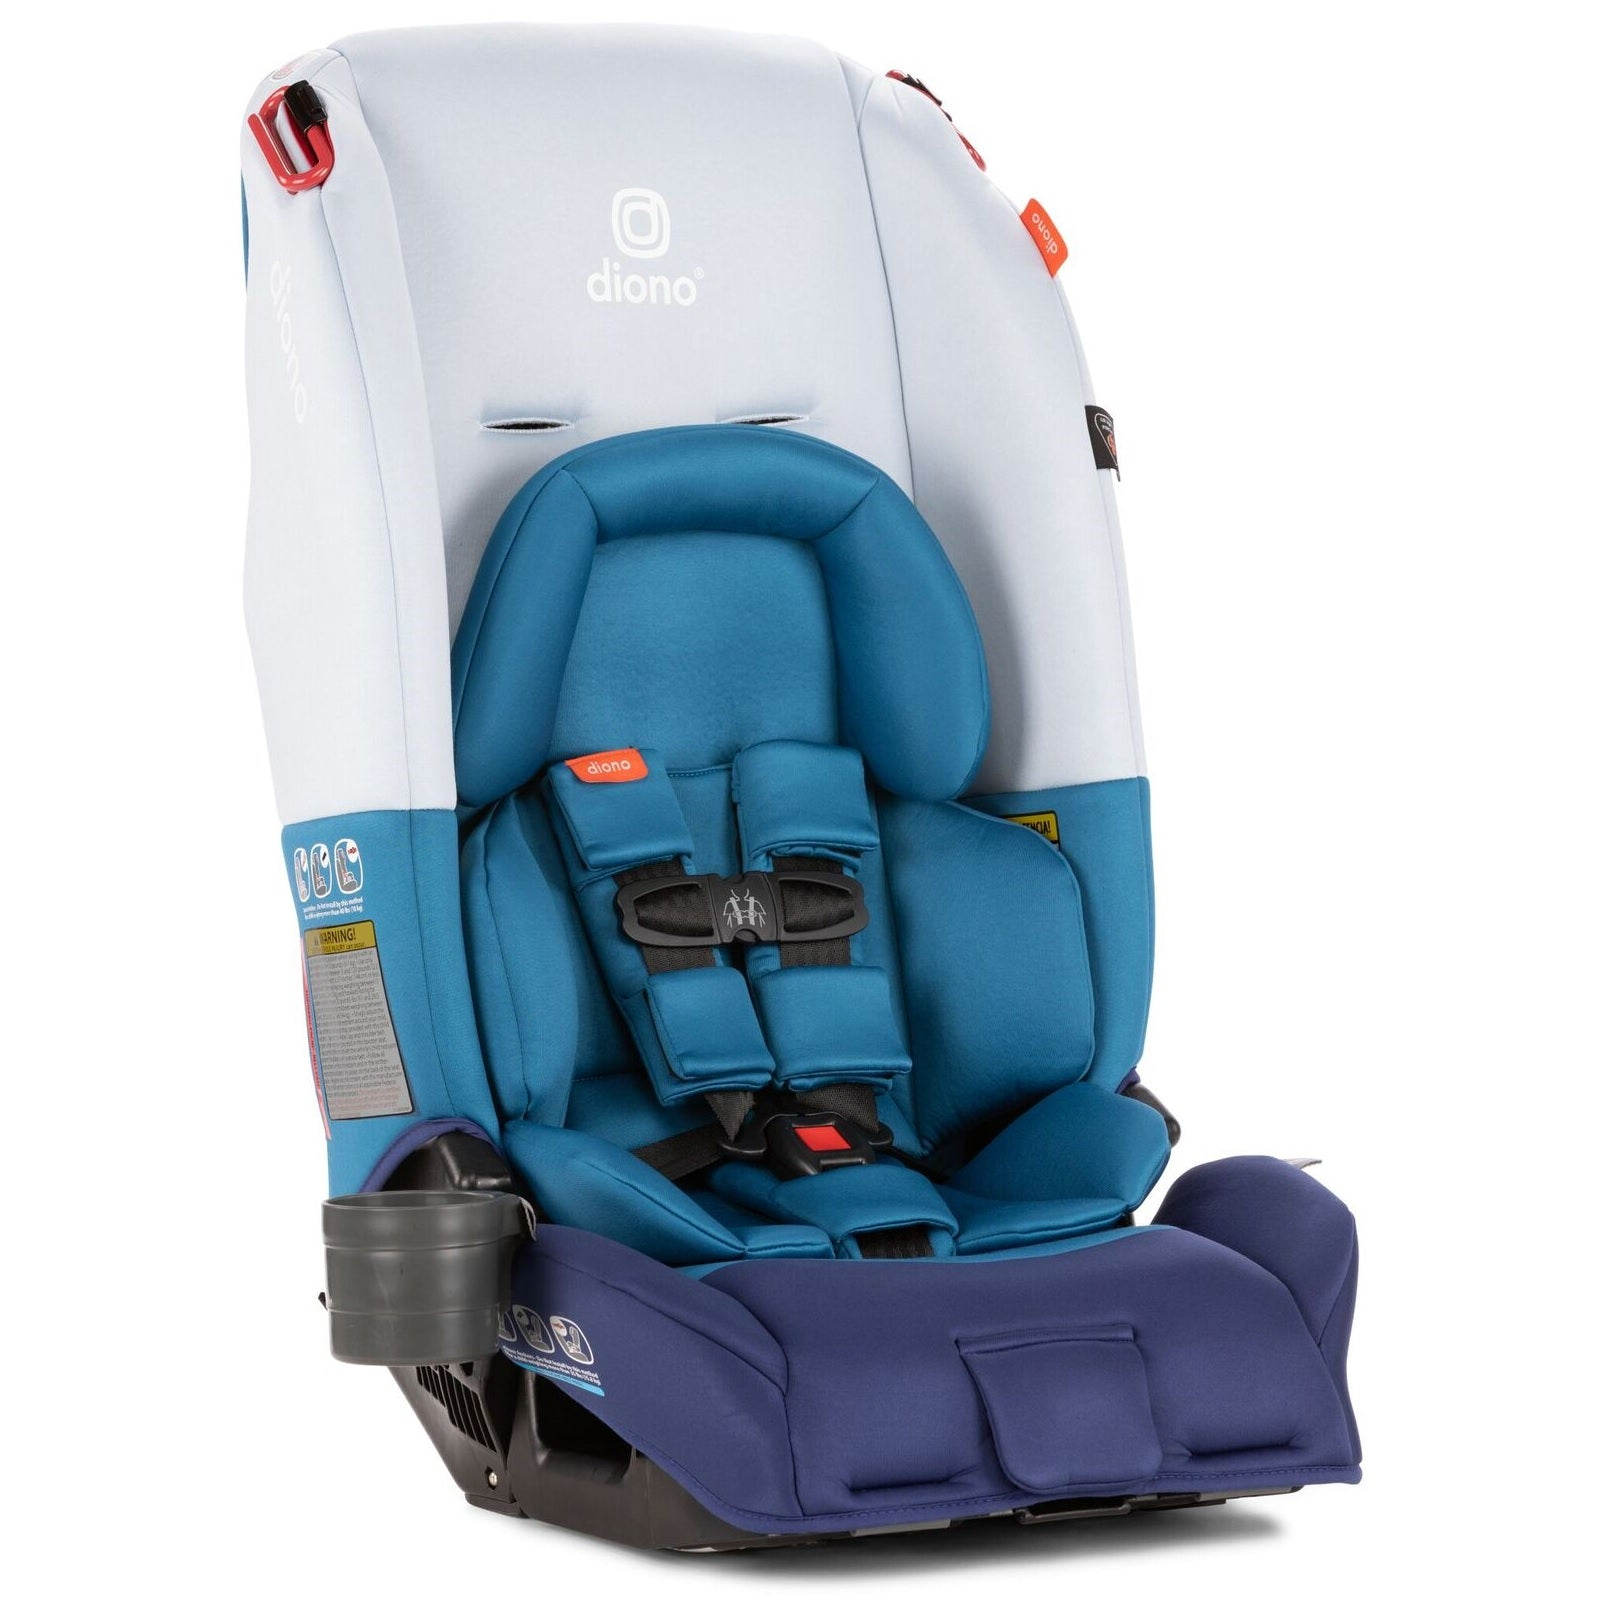 Diono RadianR 3 RX Convertible Booster Car Seat In Blue